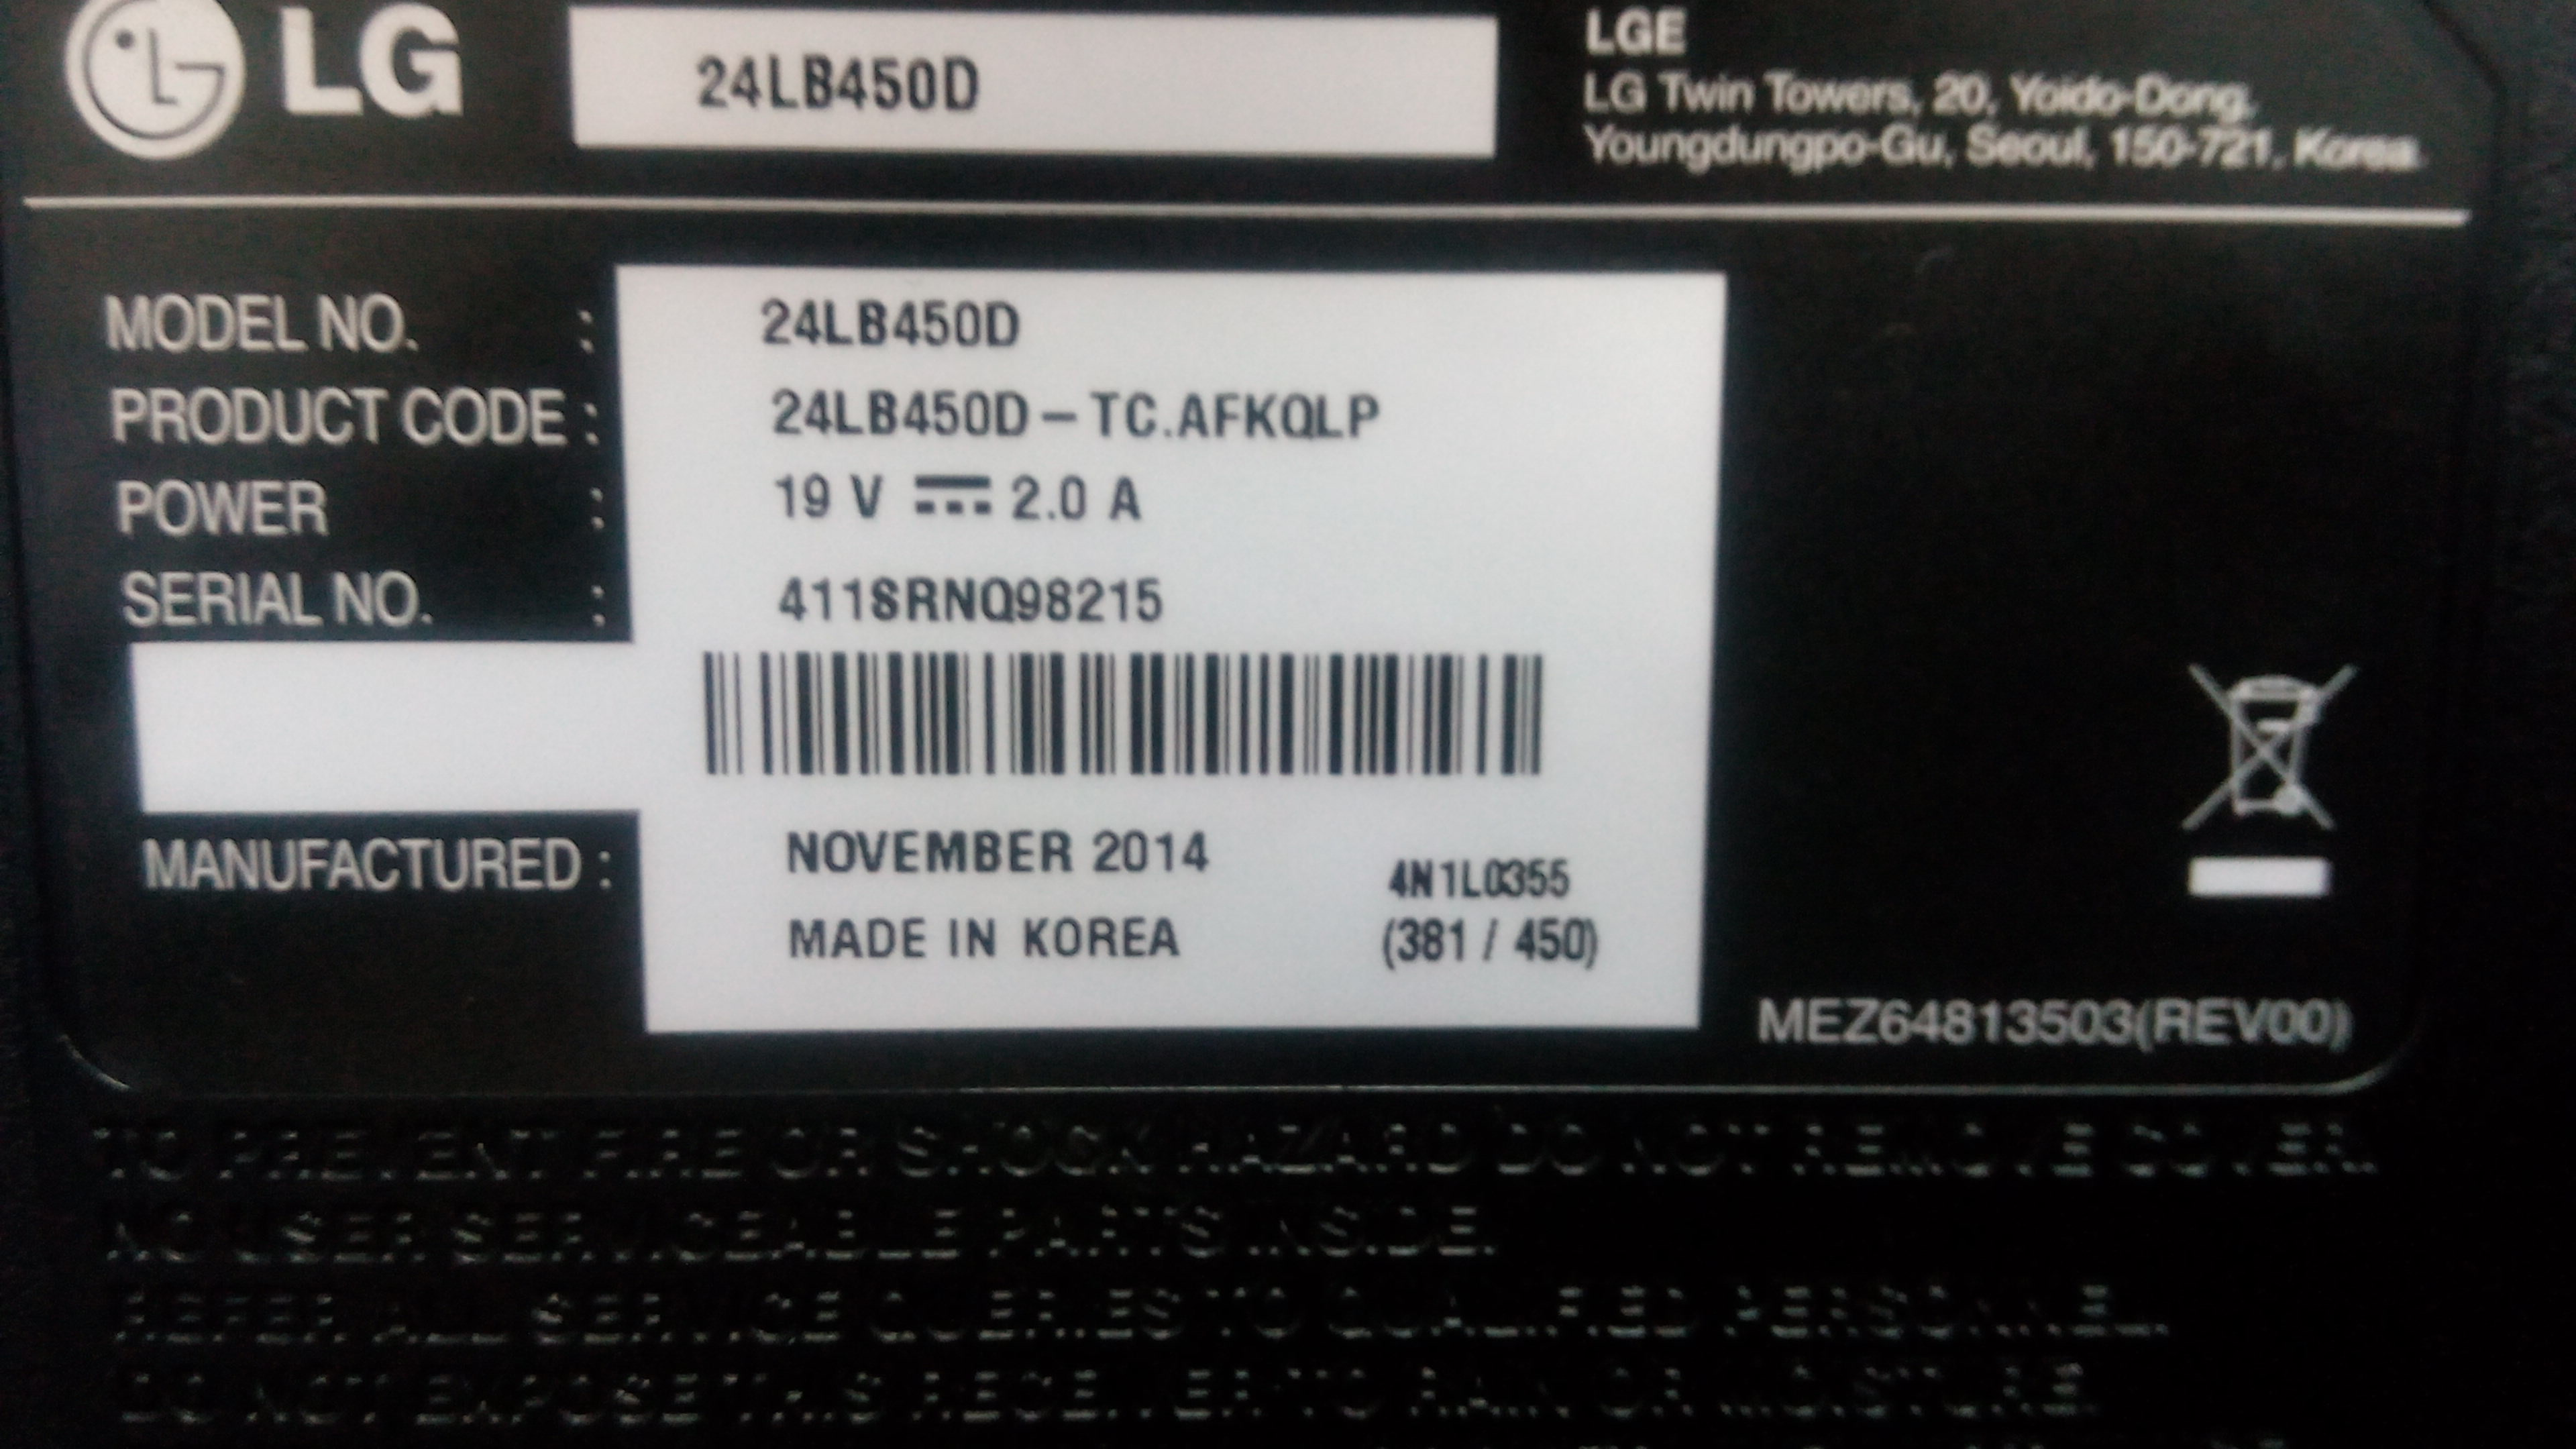 How to know if an LG TV is fake or real - Techsawa